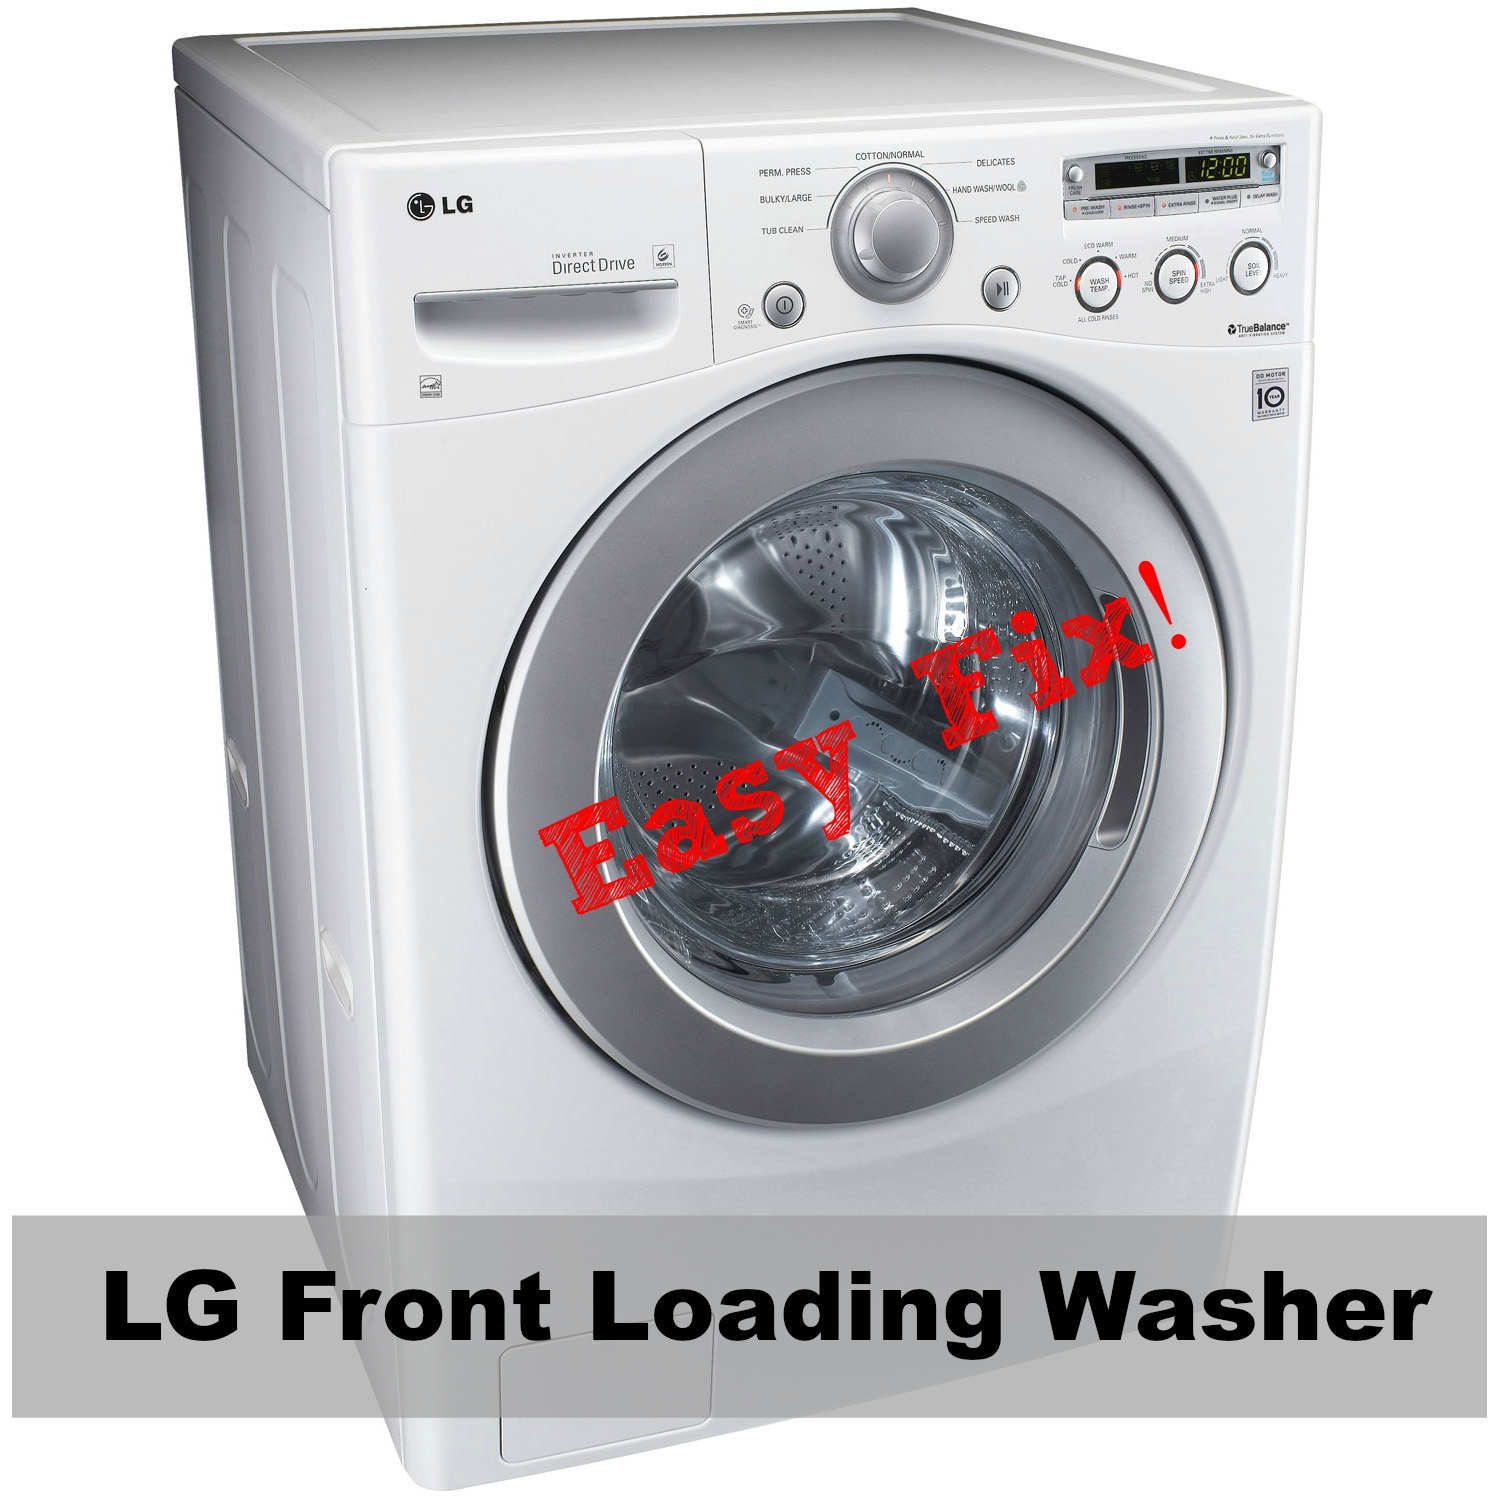 LG Front Loading Washing Machine - Easy Fix!